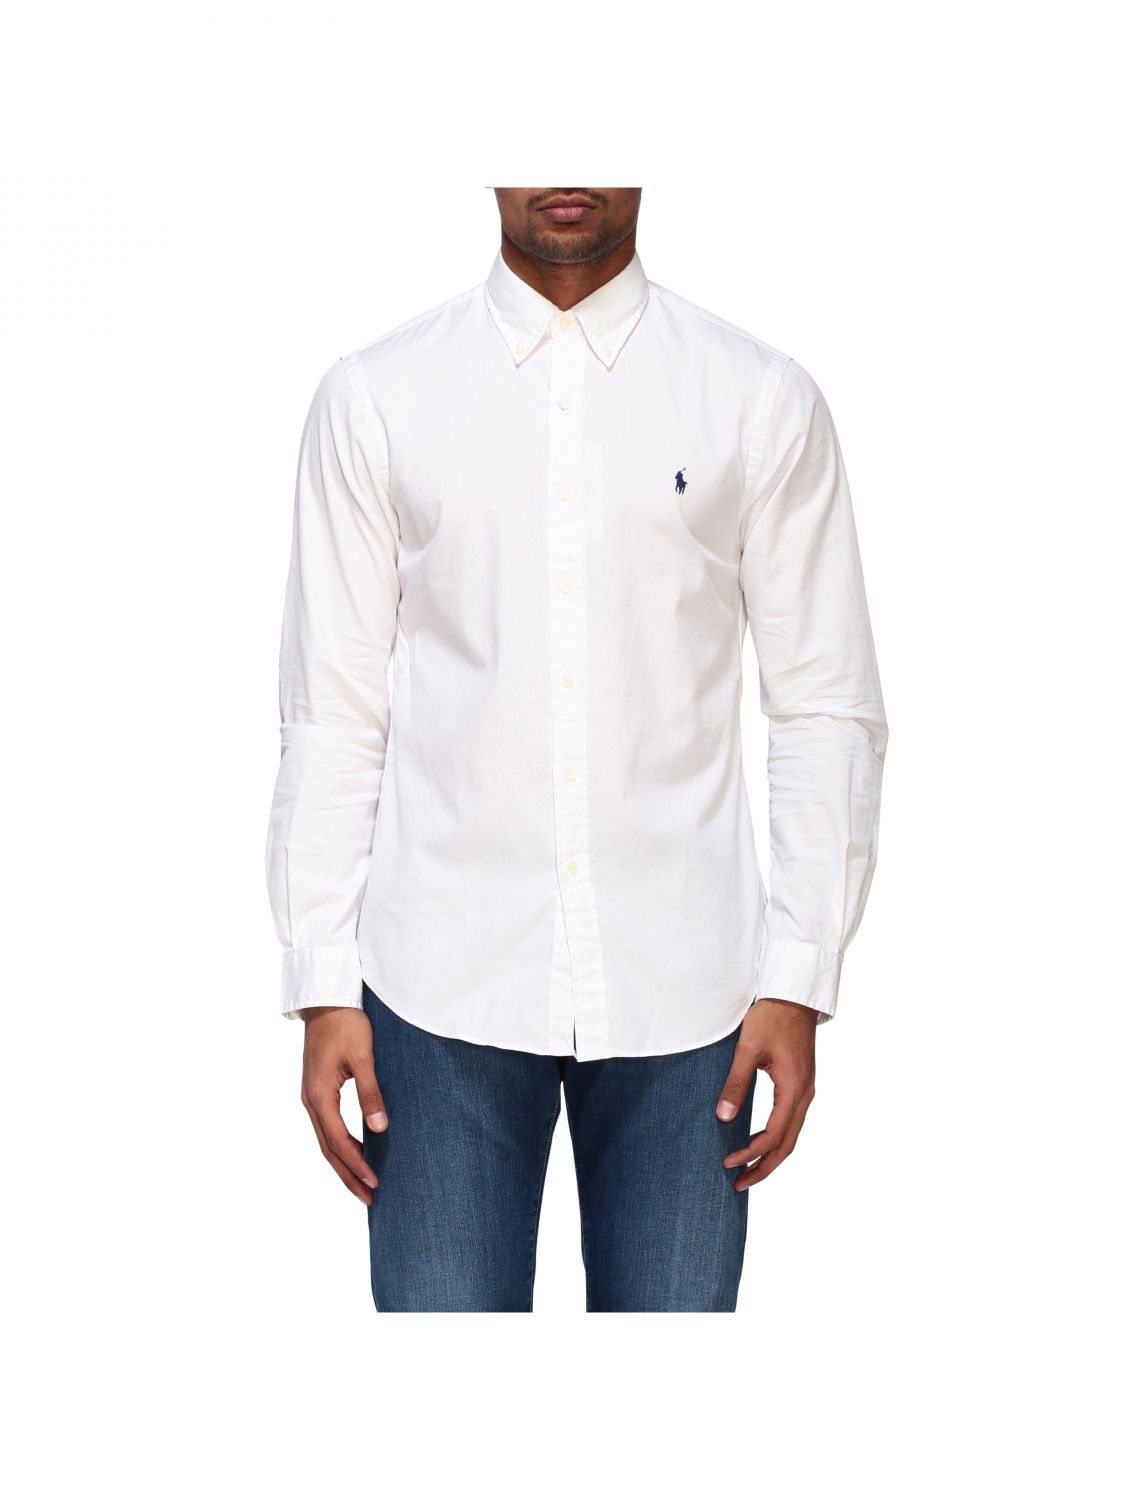 Camicia Polo Ralph Lauren in cotone con collo button down bianco 1